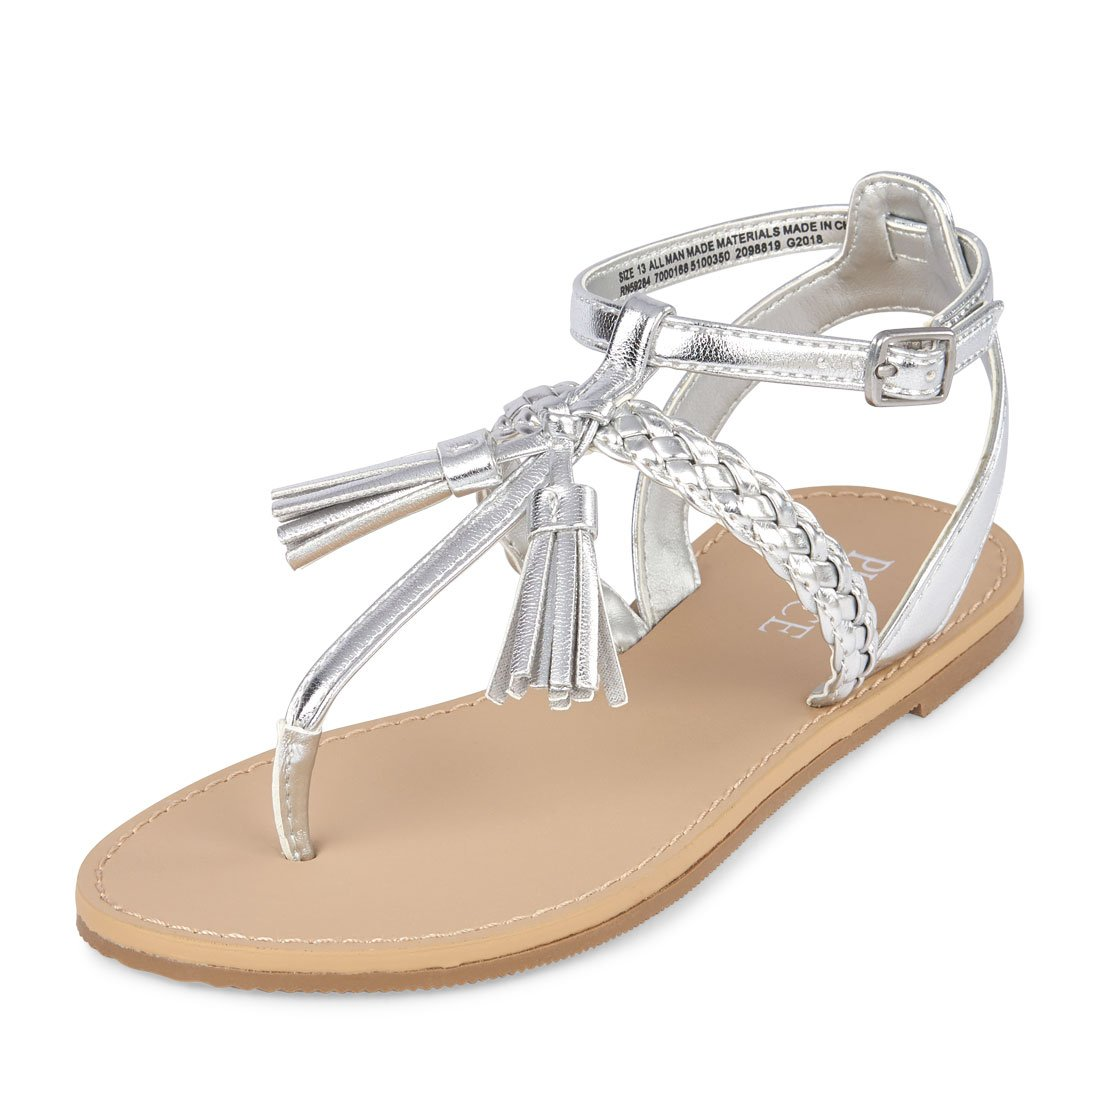 The Children's Place Girls' BG Tassle Candy Sandal, Silver, Youth 11 Youth US Big Kid